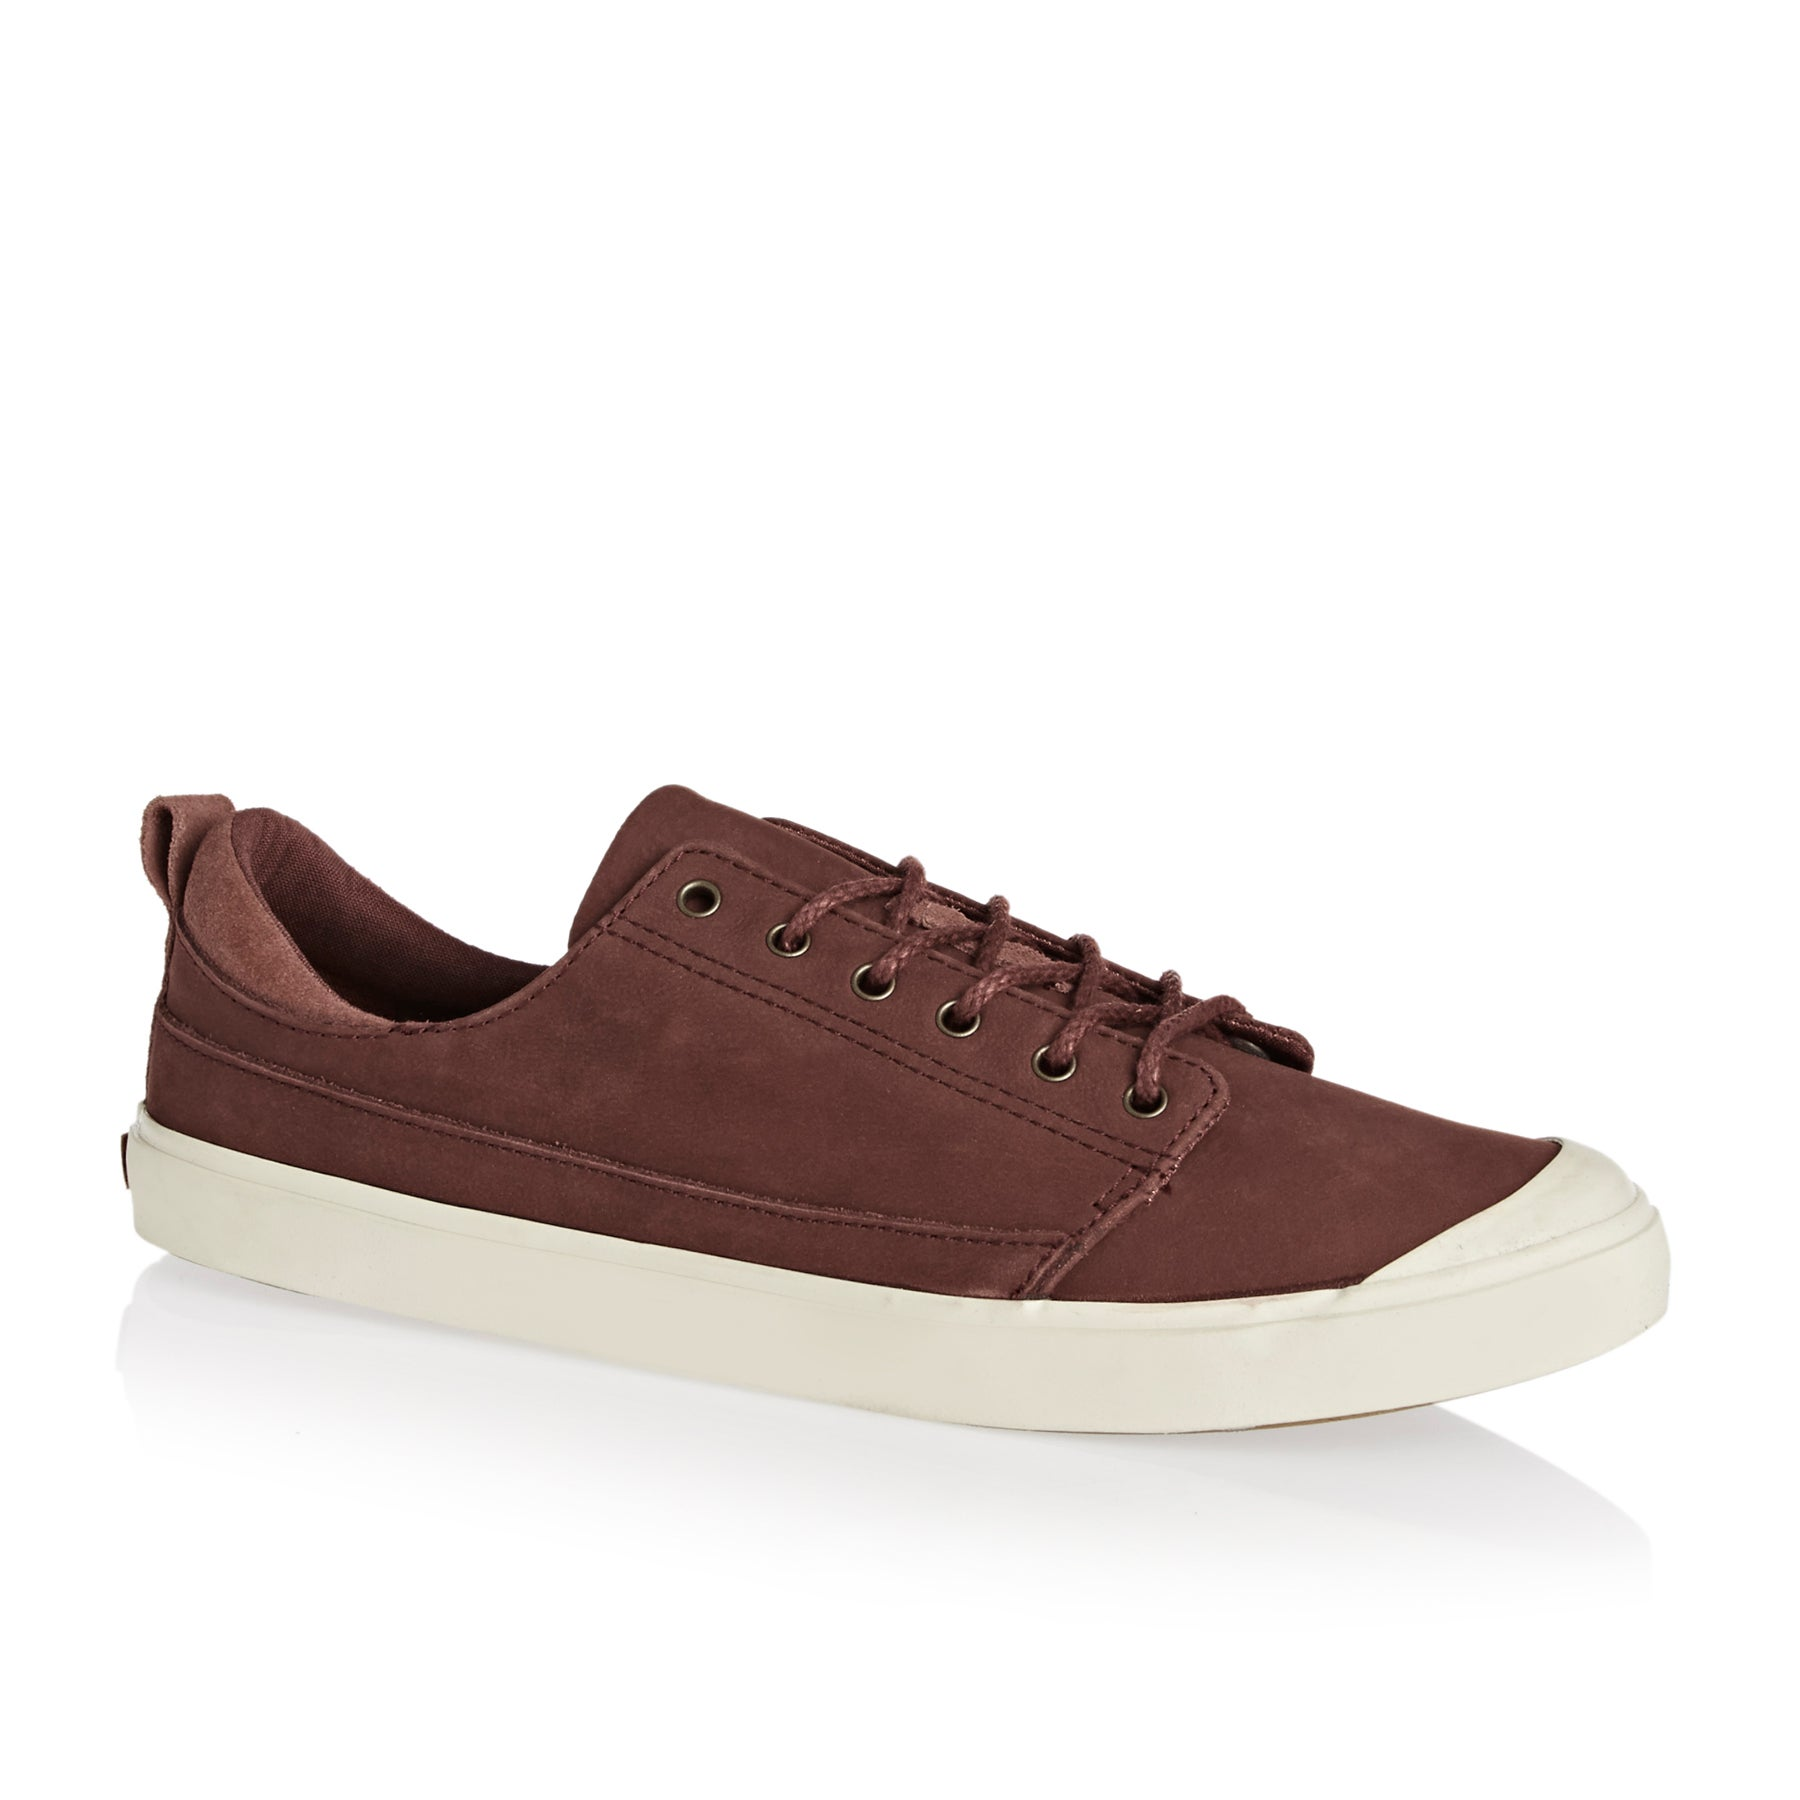 Reef Walled Low LE Womens Shoes - Bungee